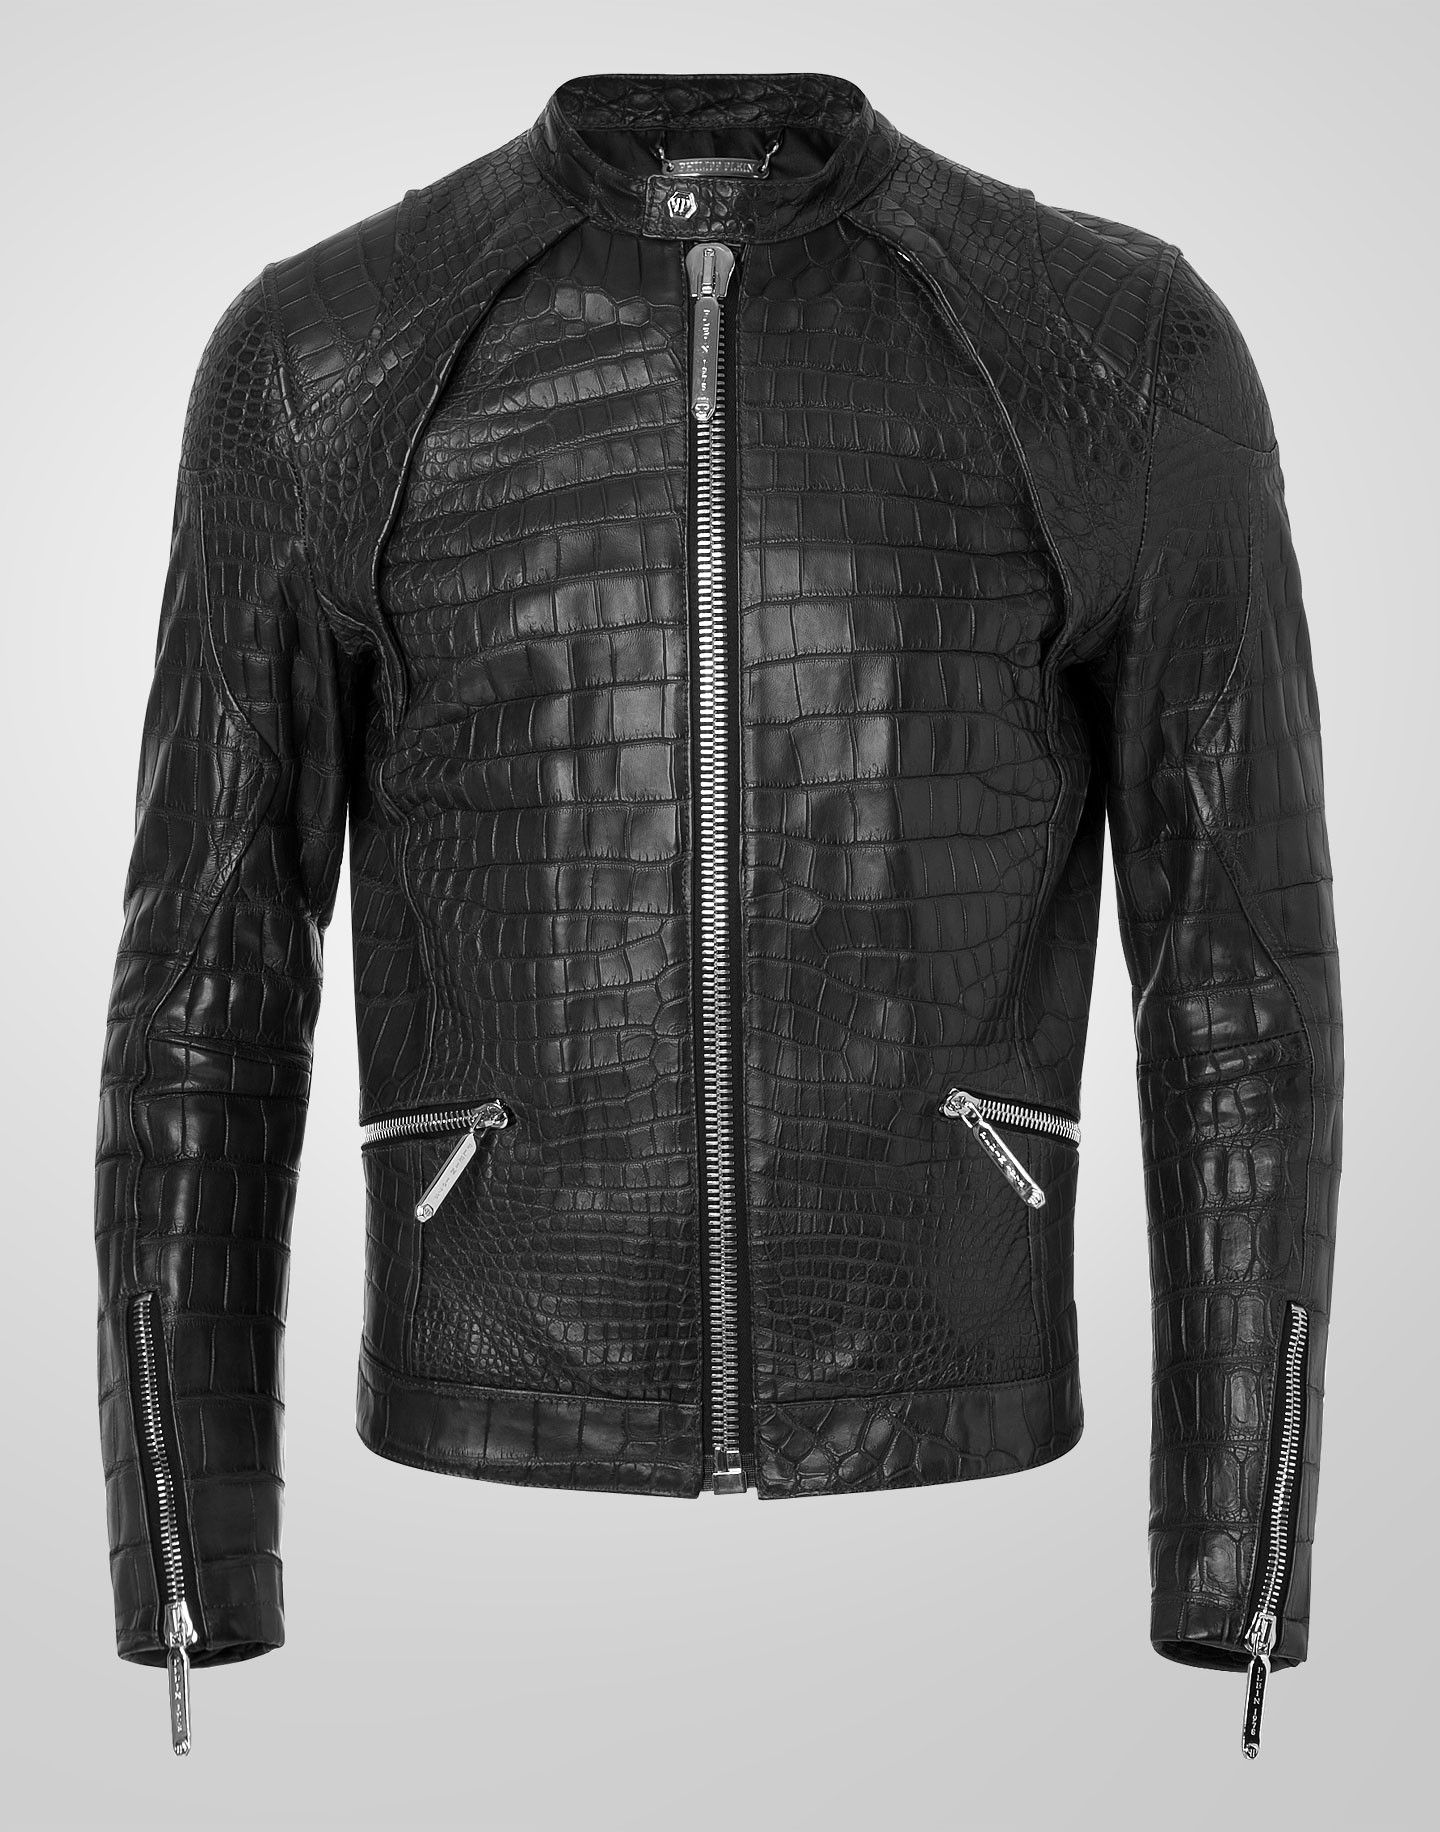 9b22335ce82d PHILIPP PLEIN LEATHER JACKET